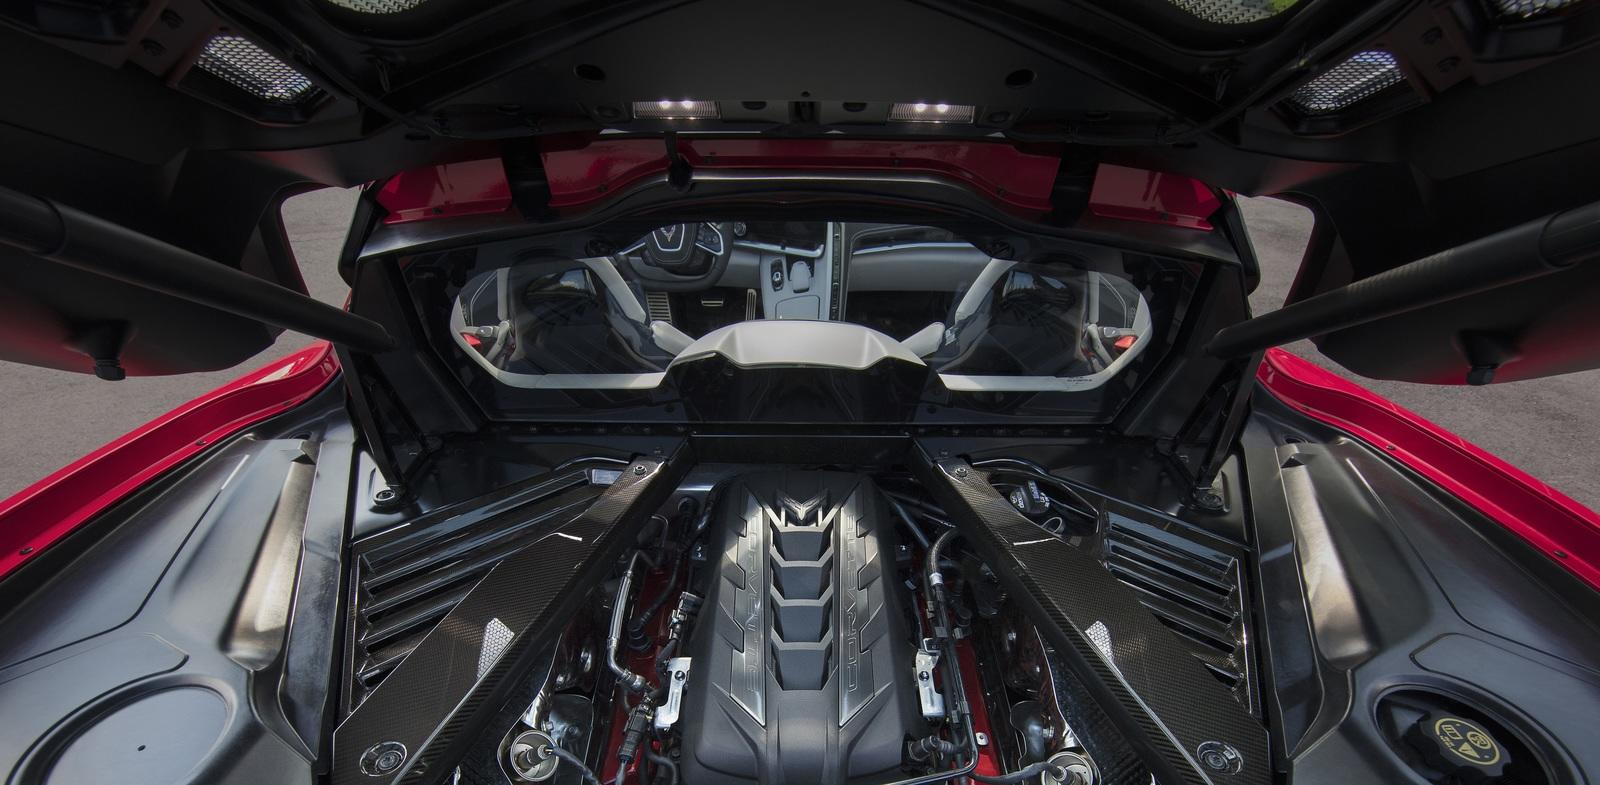 Can The 2020 Chevy C8 Corvette's LT2 V-8 Be Supercharged ...